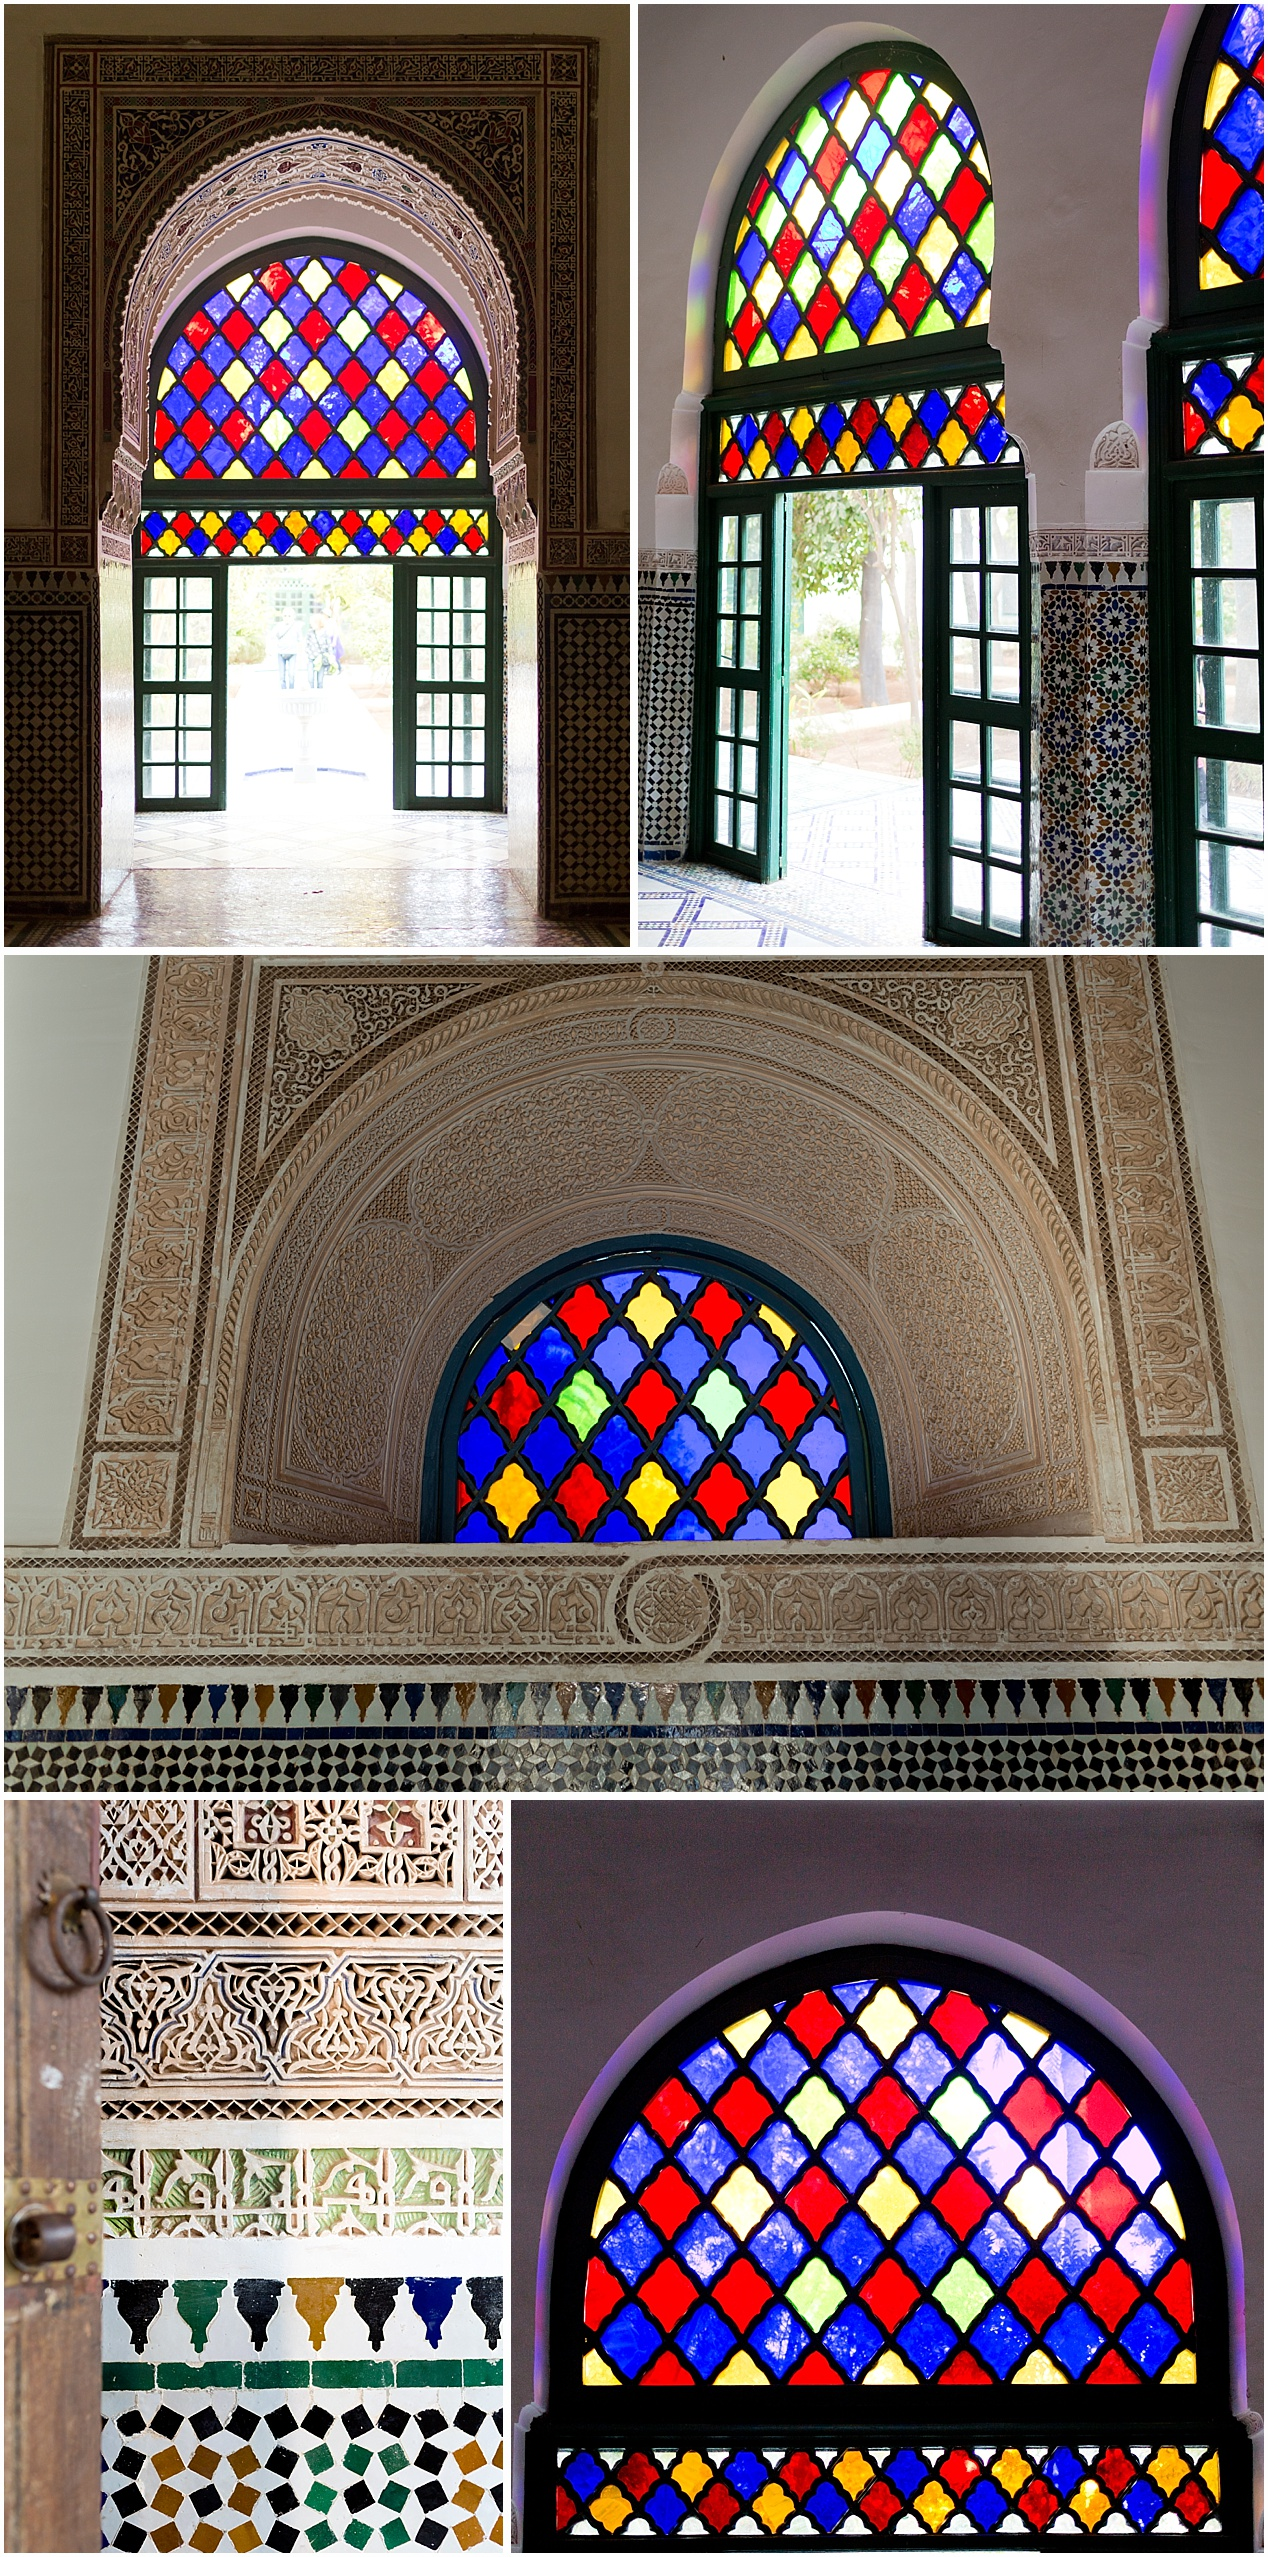 gorgeous stained glass at Bahia Palace in Marrakech, Morocco